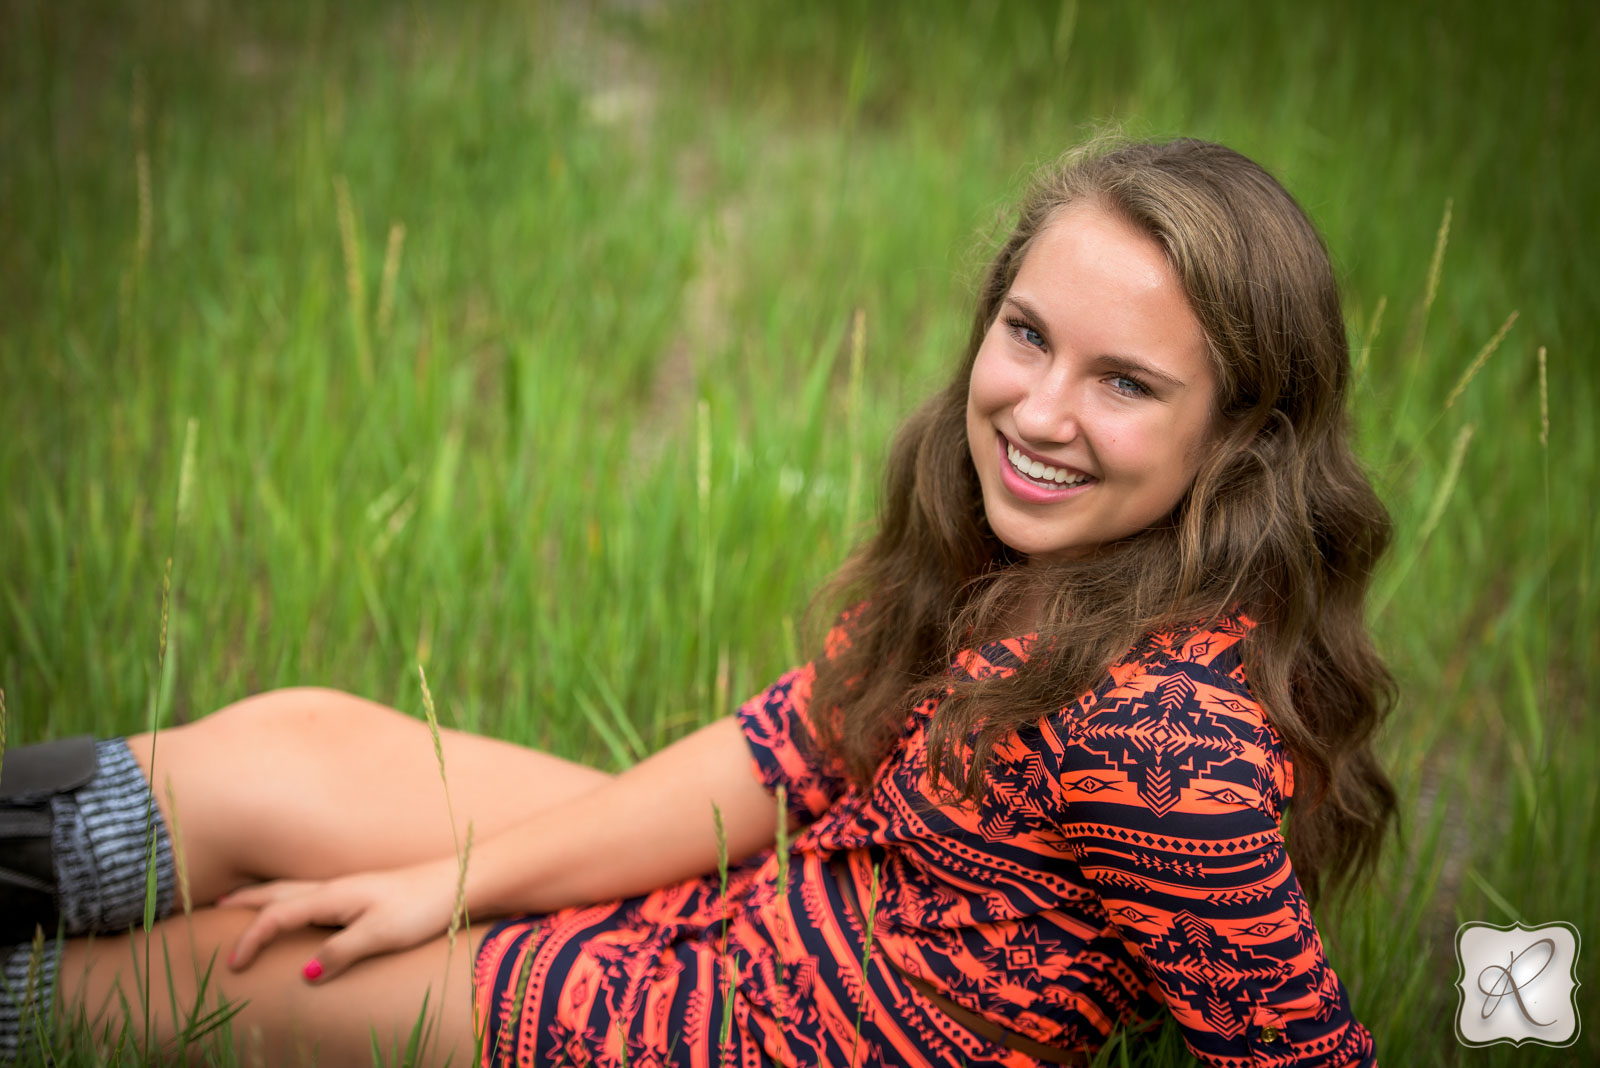 Bayfield Colorado senior pictures - red dress